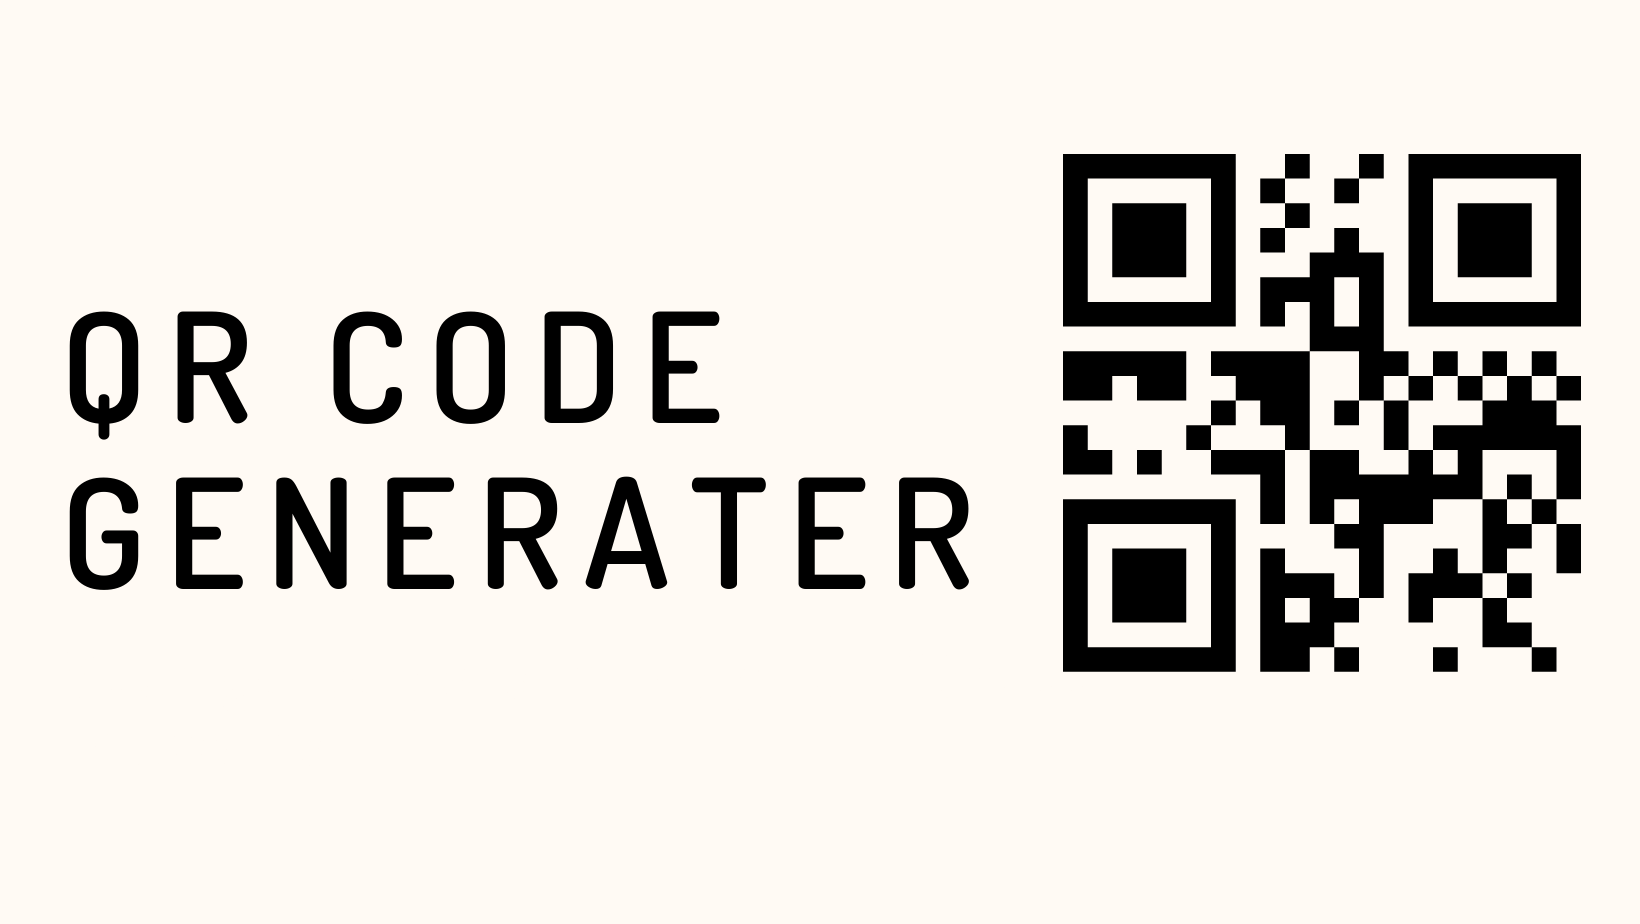 The Quick and Easy QR Code Generater